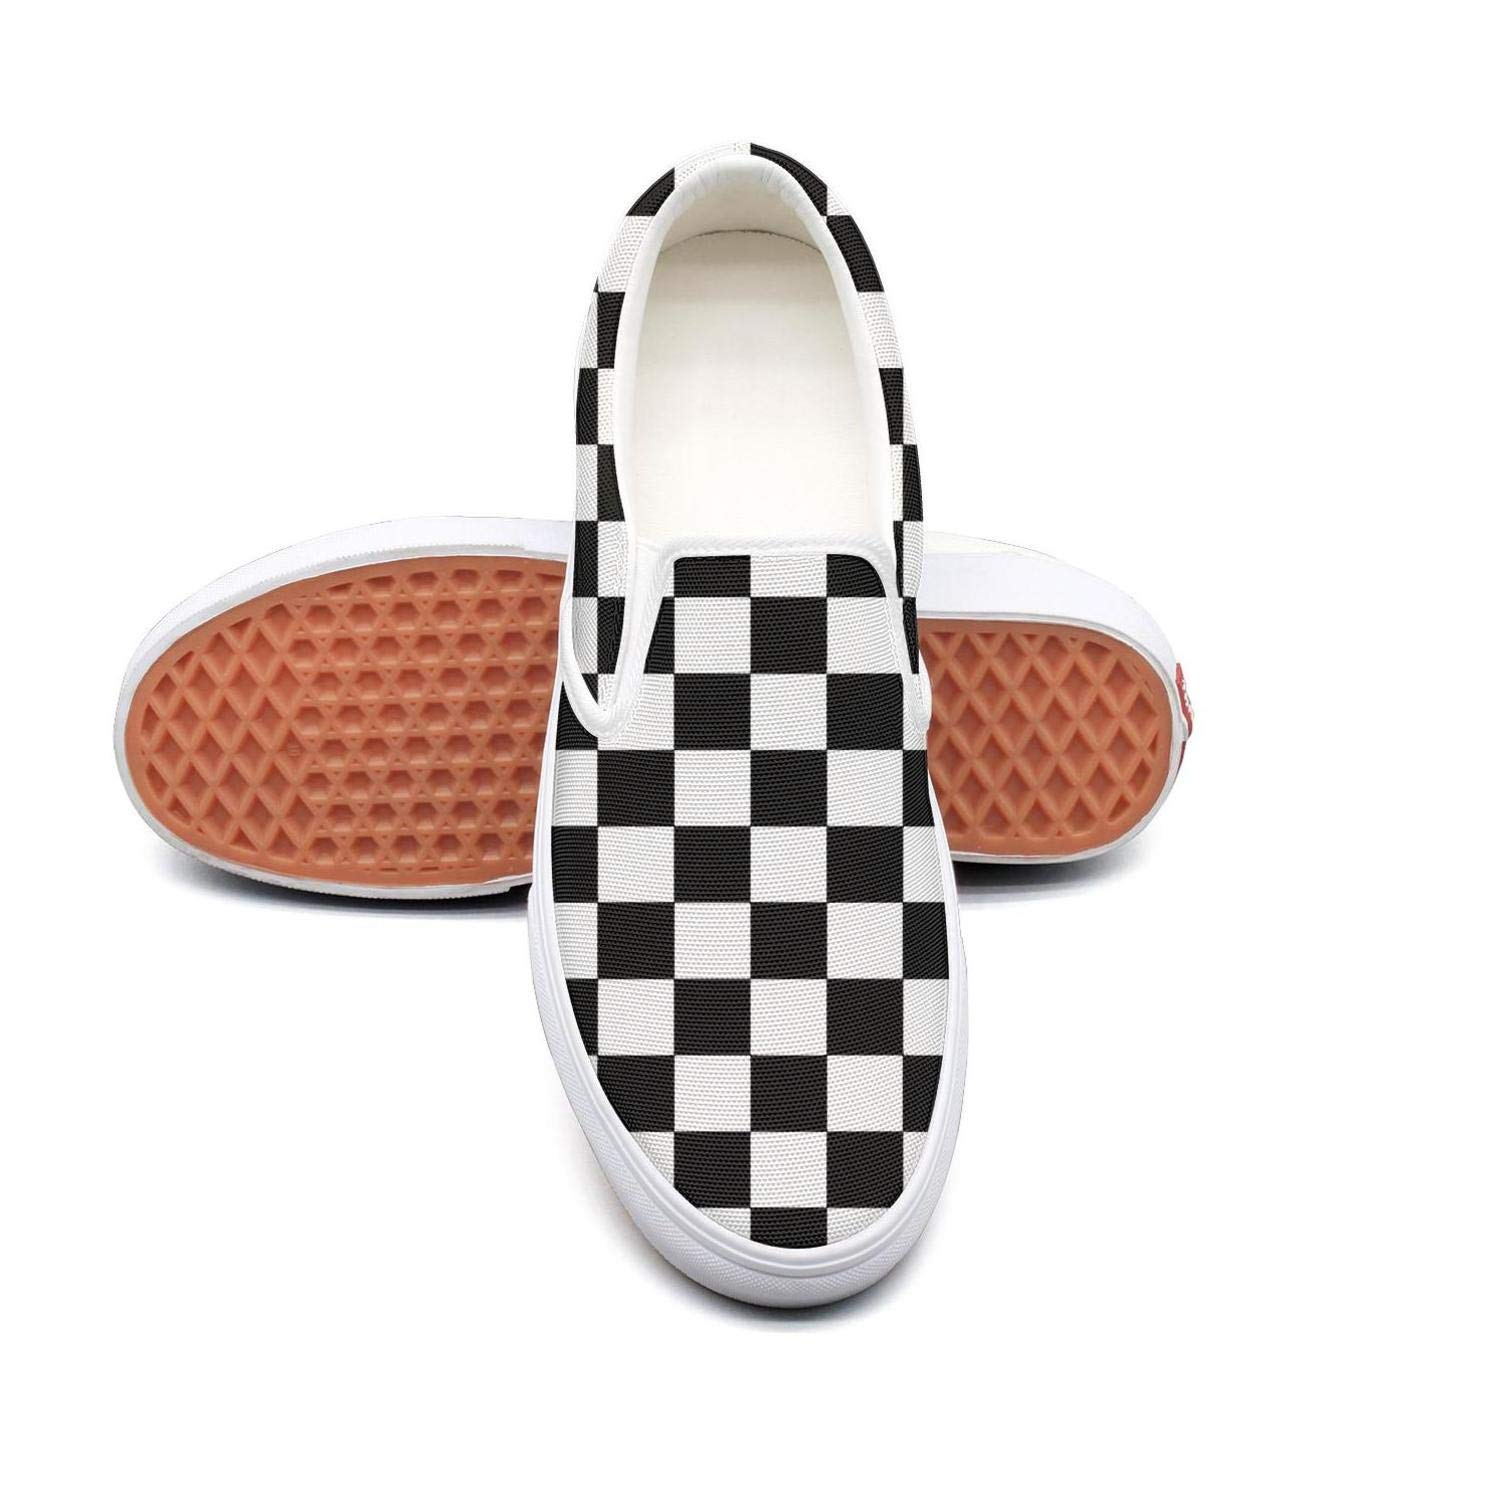 fad1296e275 Amazon.com  LLOOWWXXP Colorful Checkered Black Off White Men s Classic Checkerboard  Slip-On Skate Shoe  Sports   Outdoors